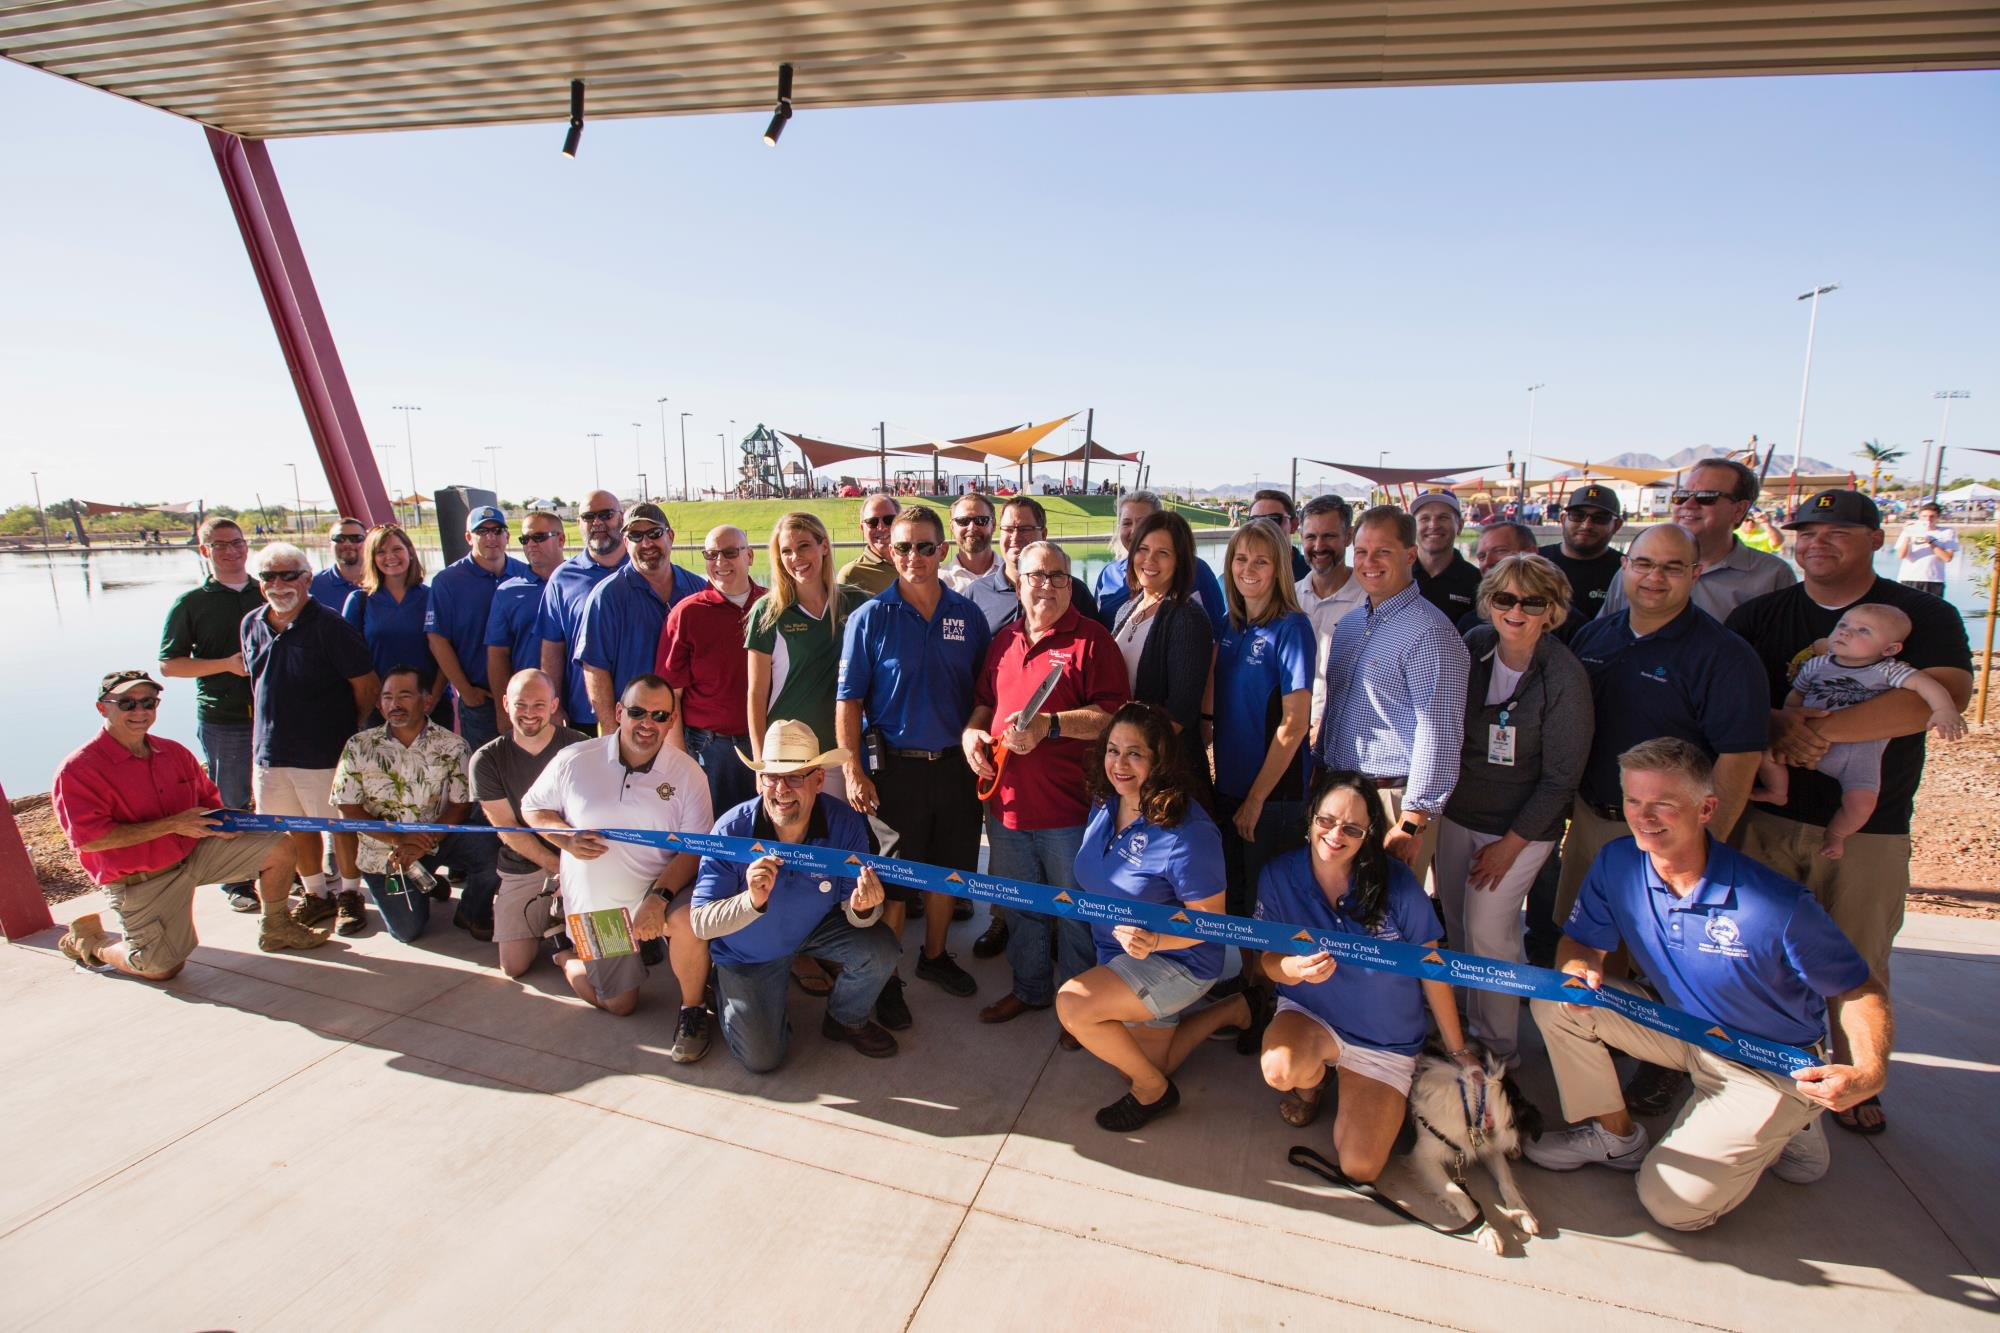 Mayor Barney and the full Town Council at the Mansel Carter Oasis Park Ribbon Cutting on September 1